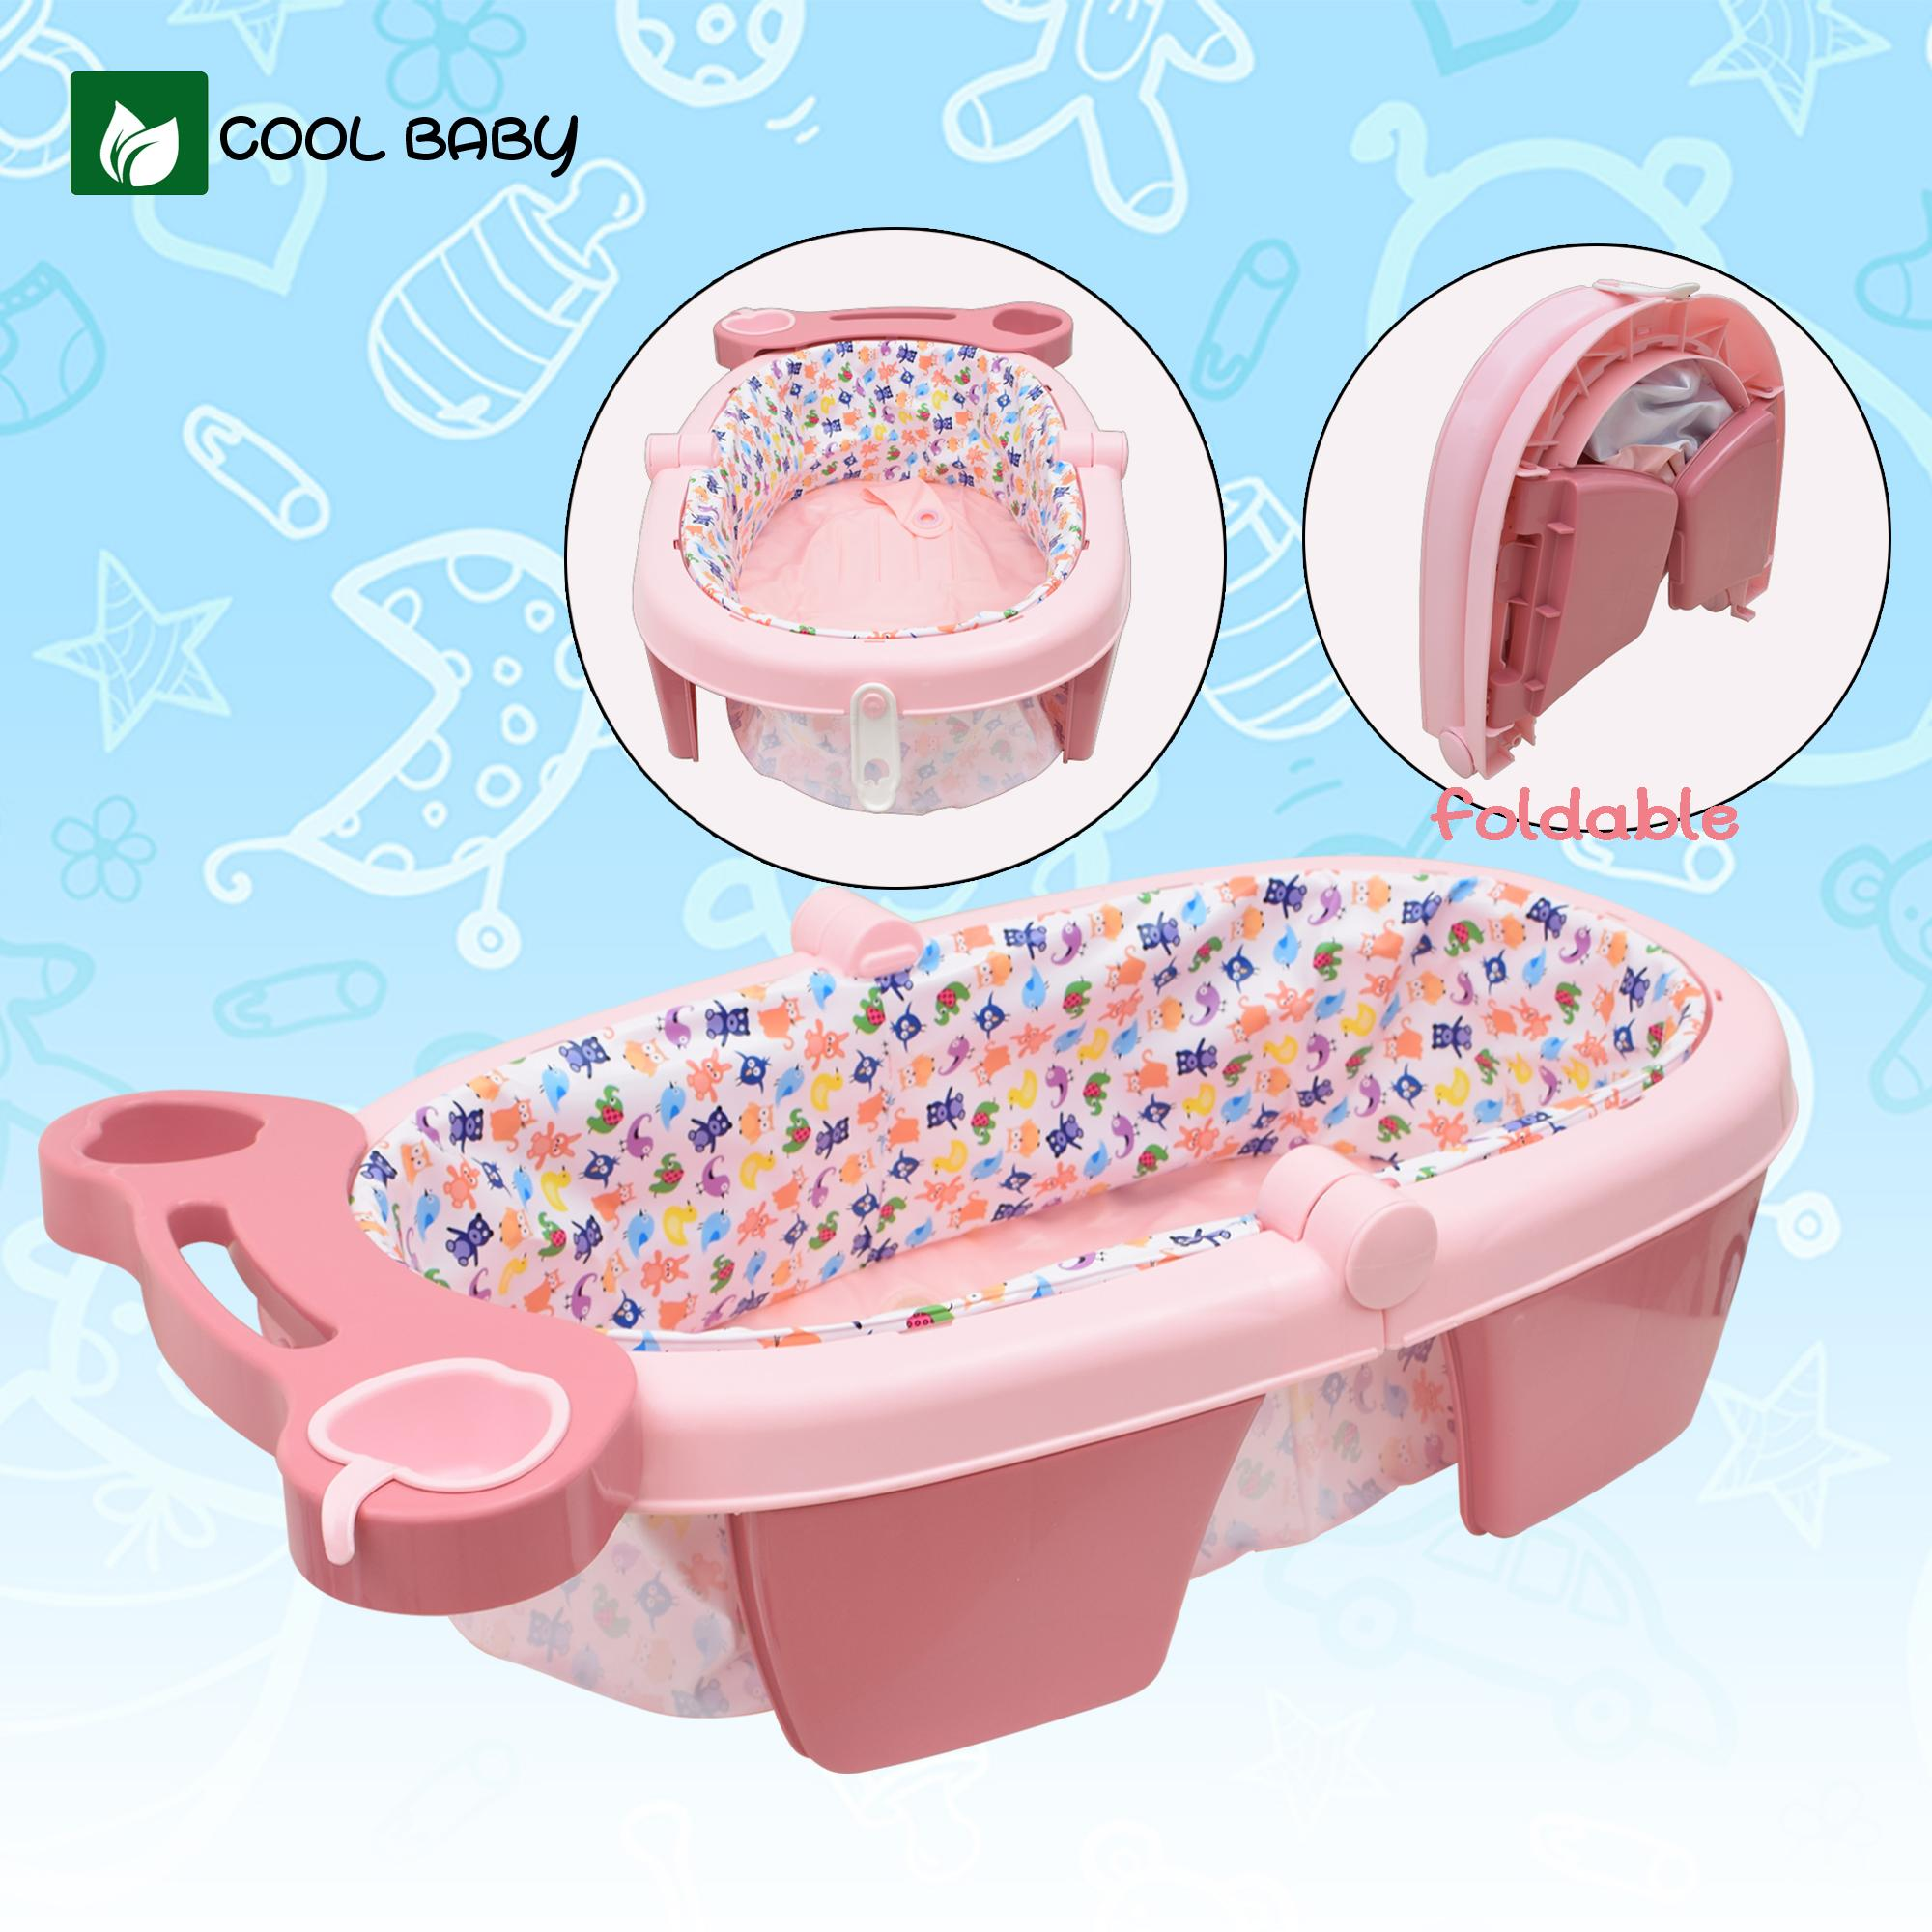 Bestway Inflatable Baby Bath Shower Tub Travel White Indoor Outdoor Camping Customers First Inflatables Kayaking, Canoeing & Rafting